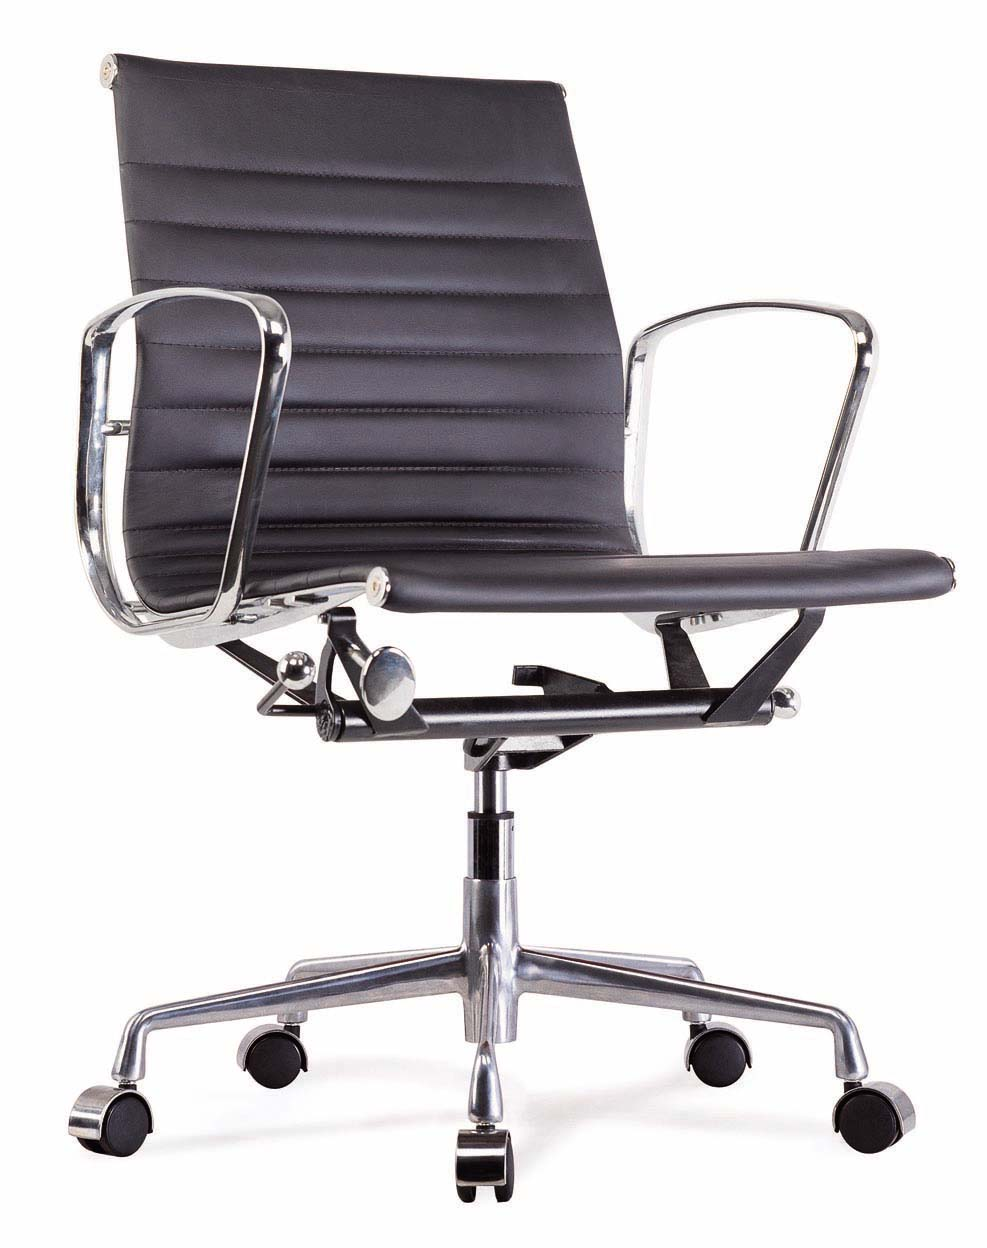 Office Leather Chair. Prev / Next Office Leather Chair B